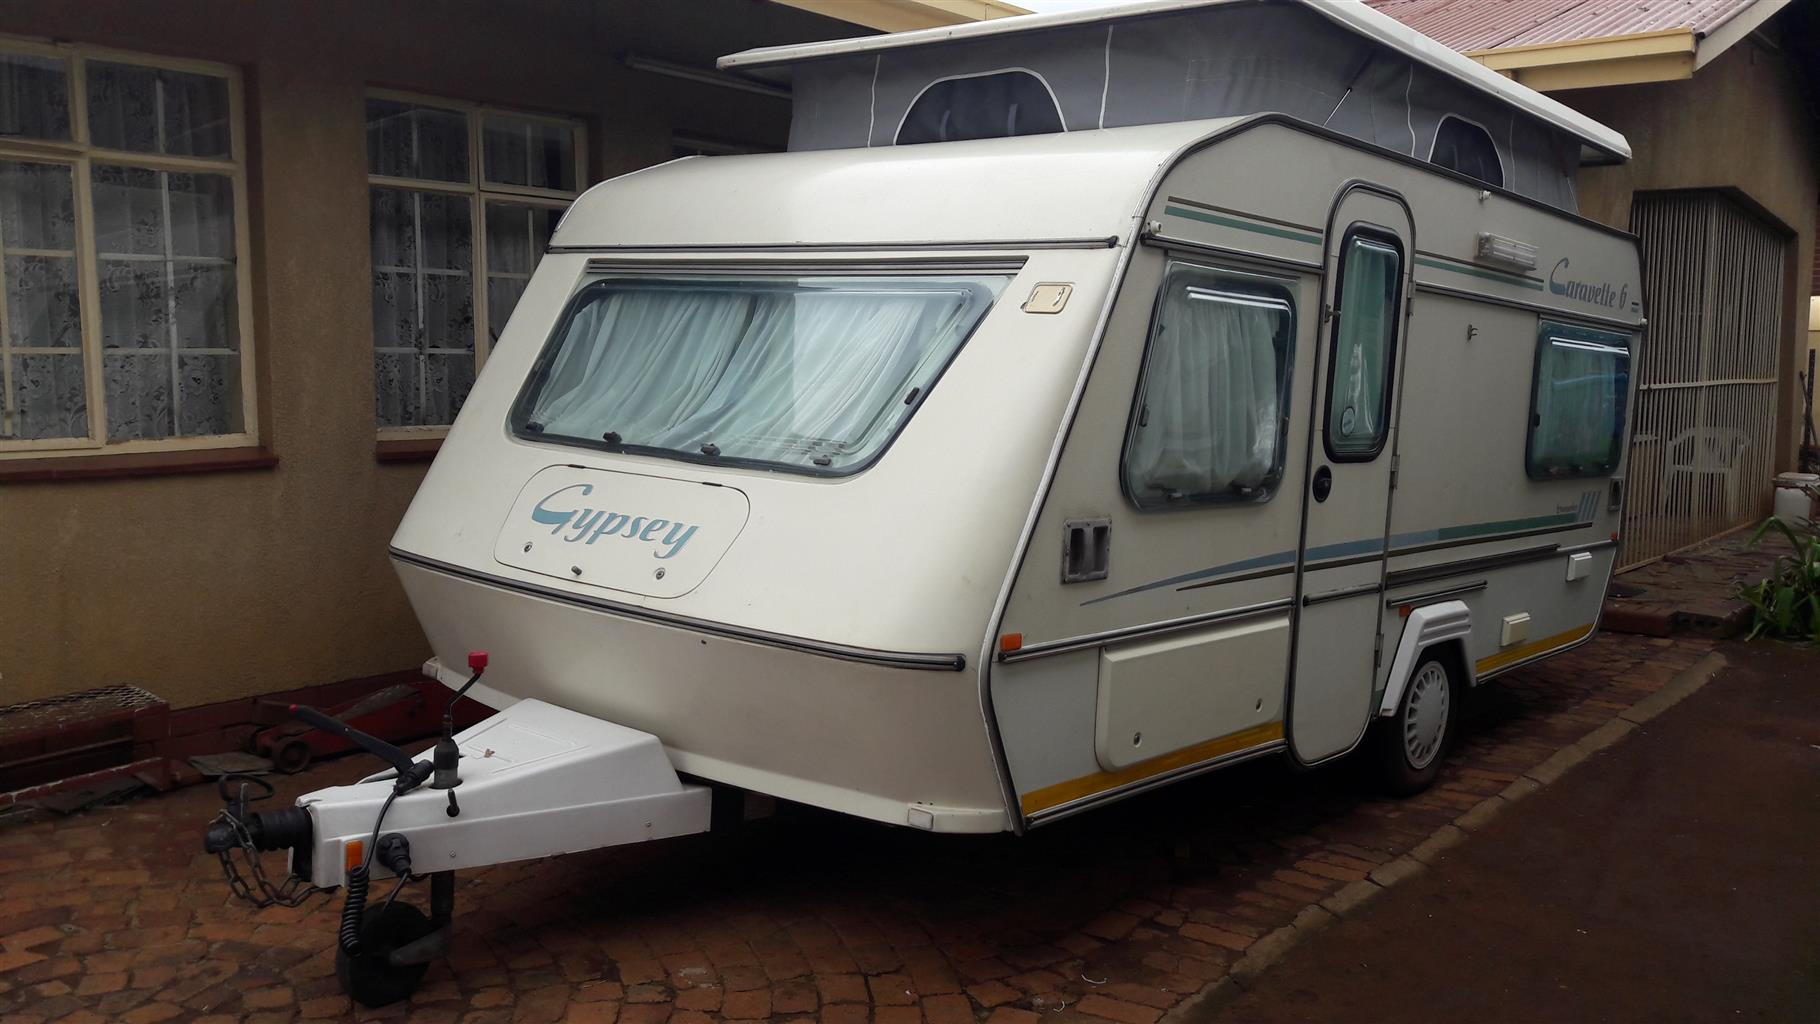 GYPSEY CARAVETTE 6 WITH FULL TENT RALLY TENT AND BIG FRIDGE AND FREEZER IN EXCELLENT CONDITION MUST BE SEEN